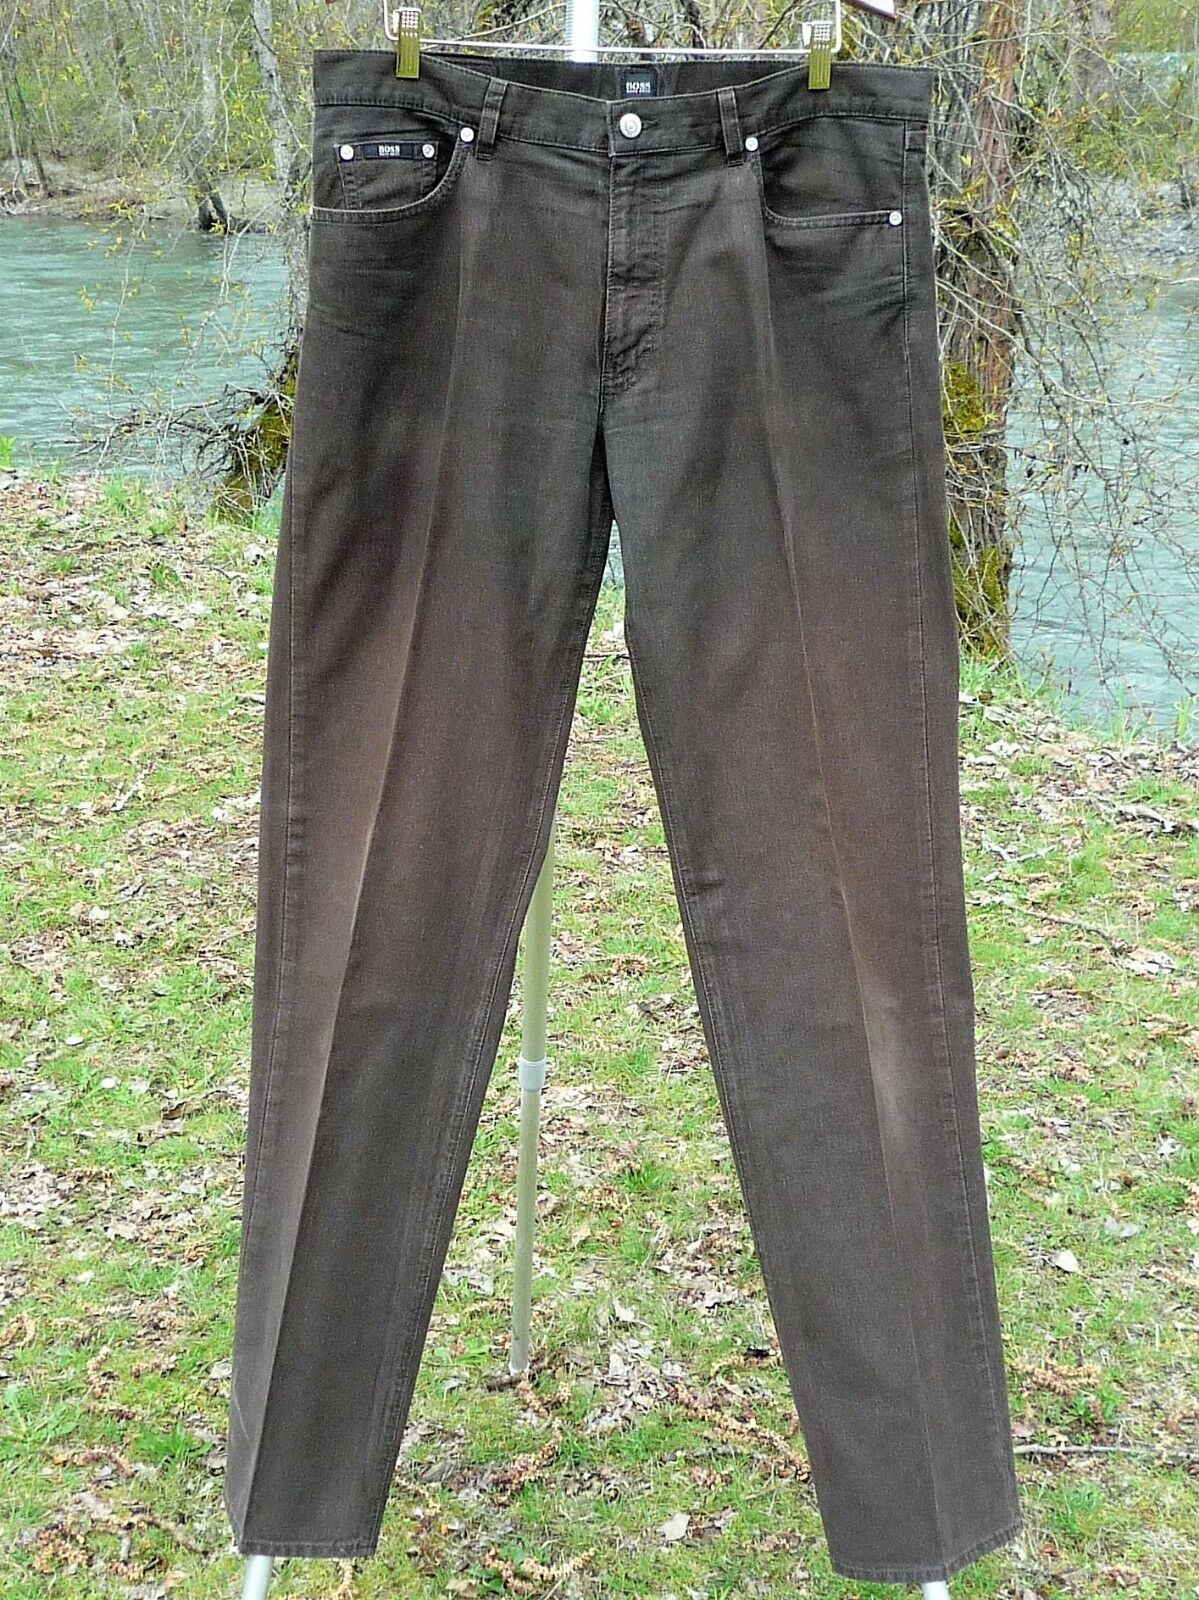 BOSS HUGO BOSS PANTS 40  X 36 1 4  BROWN COTTONISH HIGH RISE COMFORT CORDS-LOOK